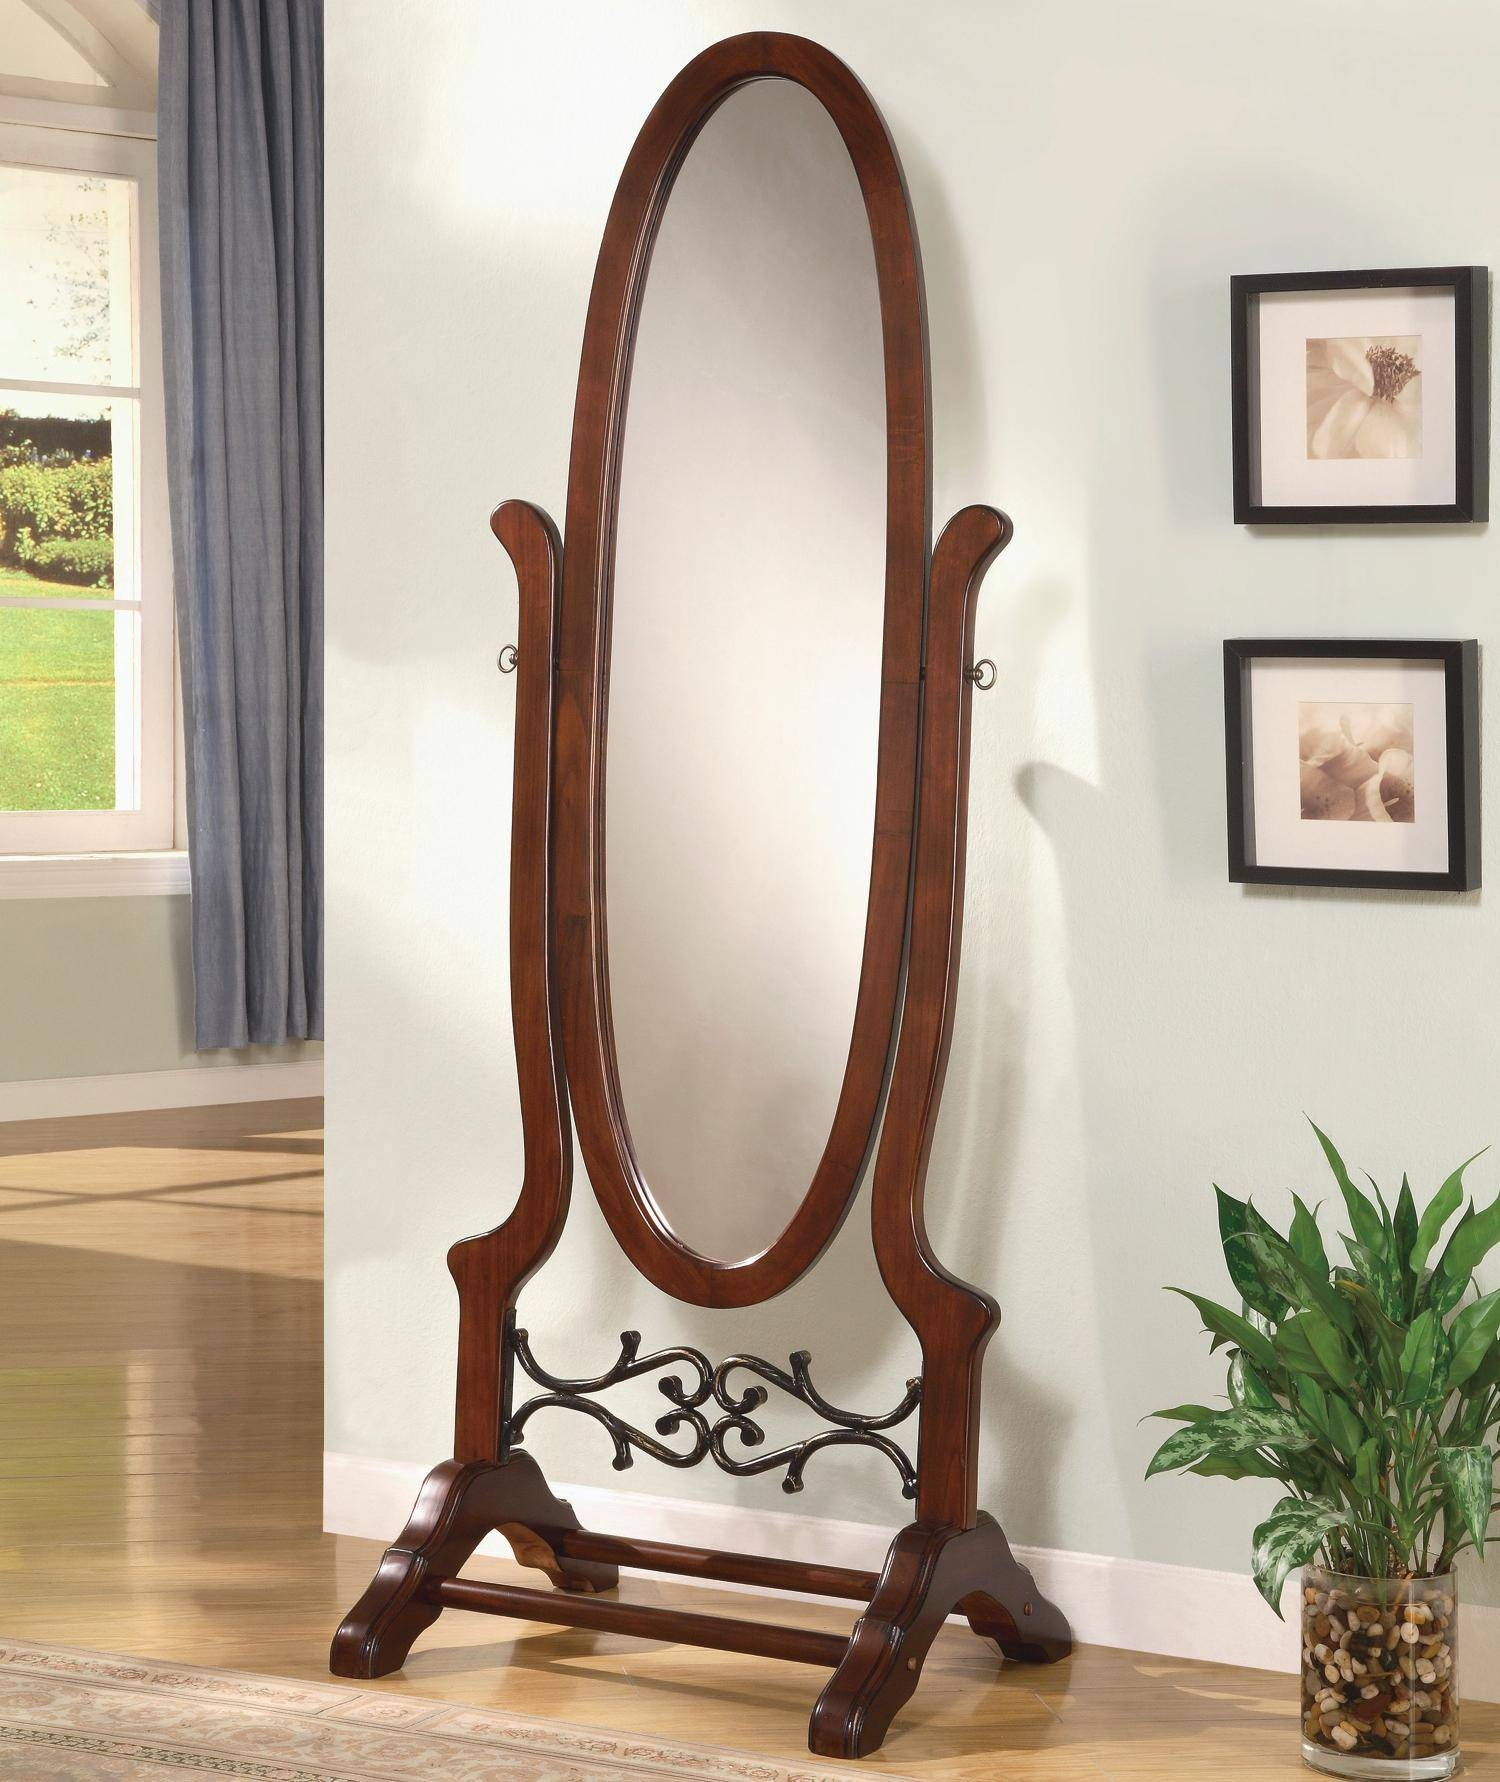 Decorating: Amusing Cheval Mirror For Home Furniture Ideas — Mtyp regarding Cheval Freestanding Mirrors (Image 9 of 15)